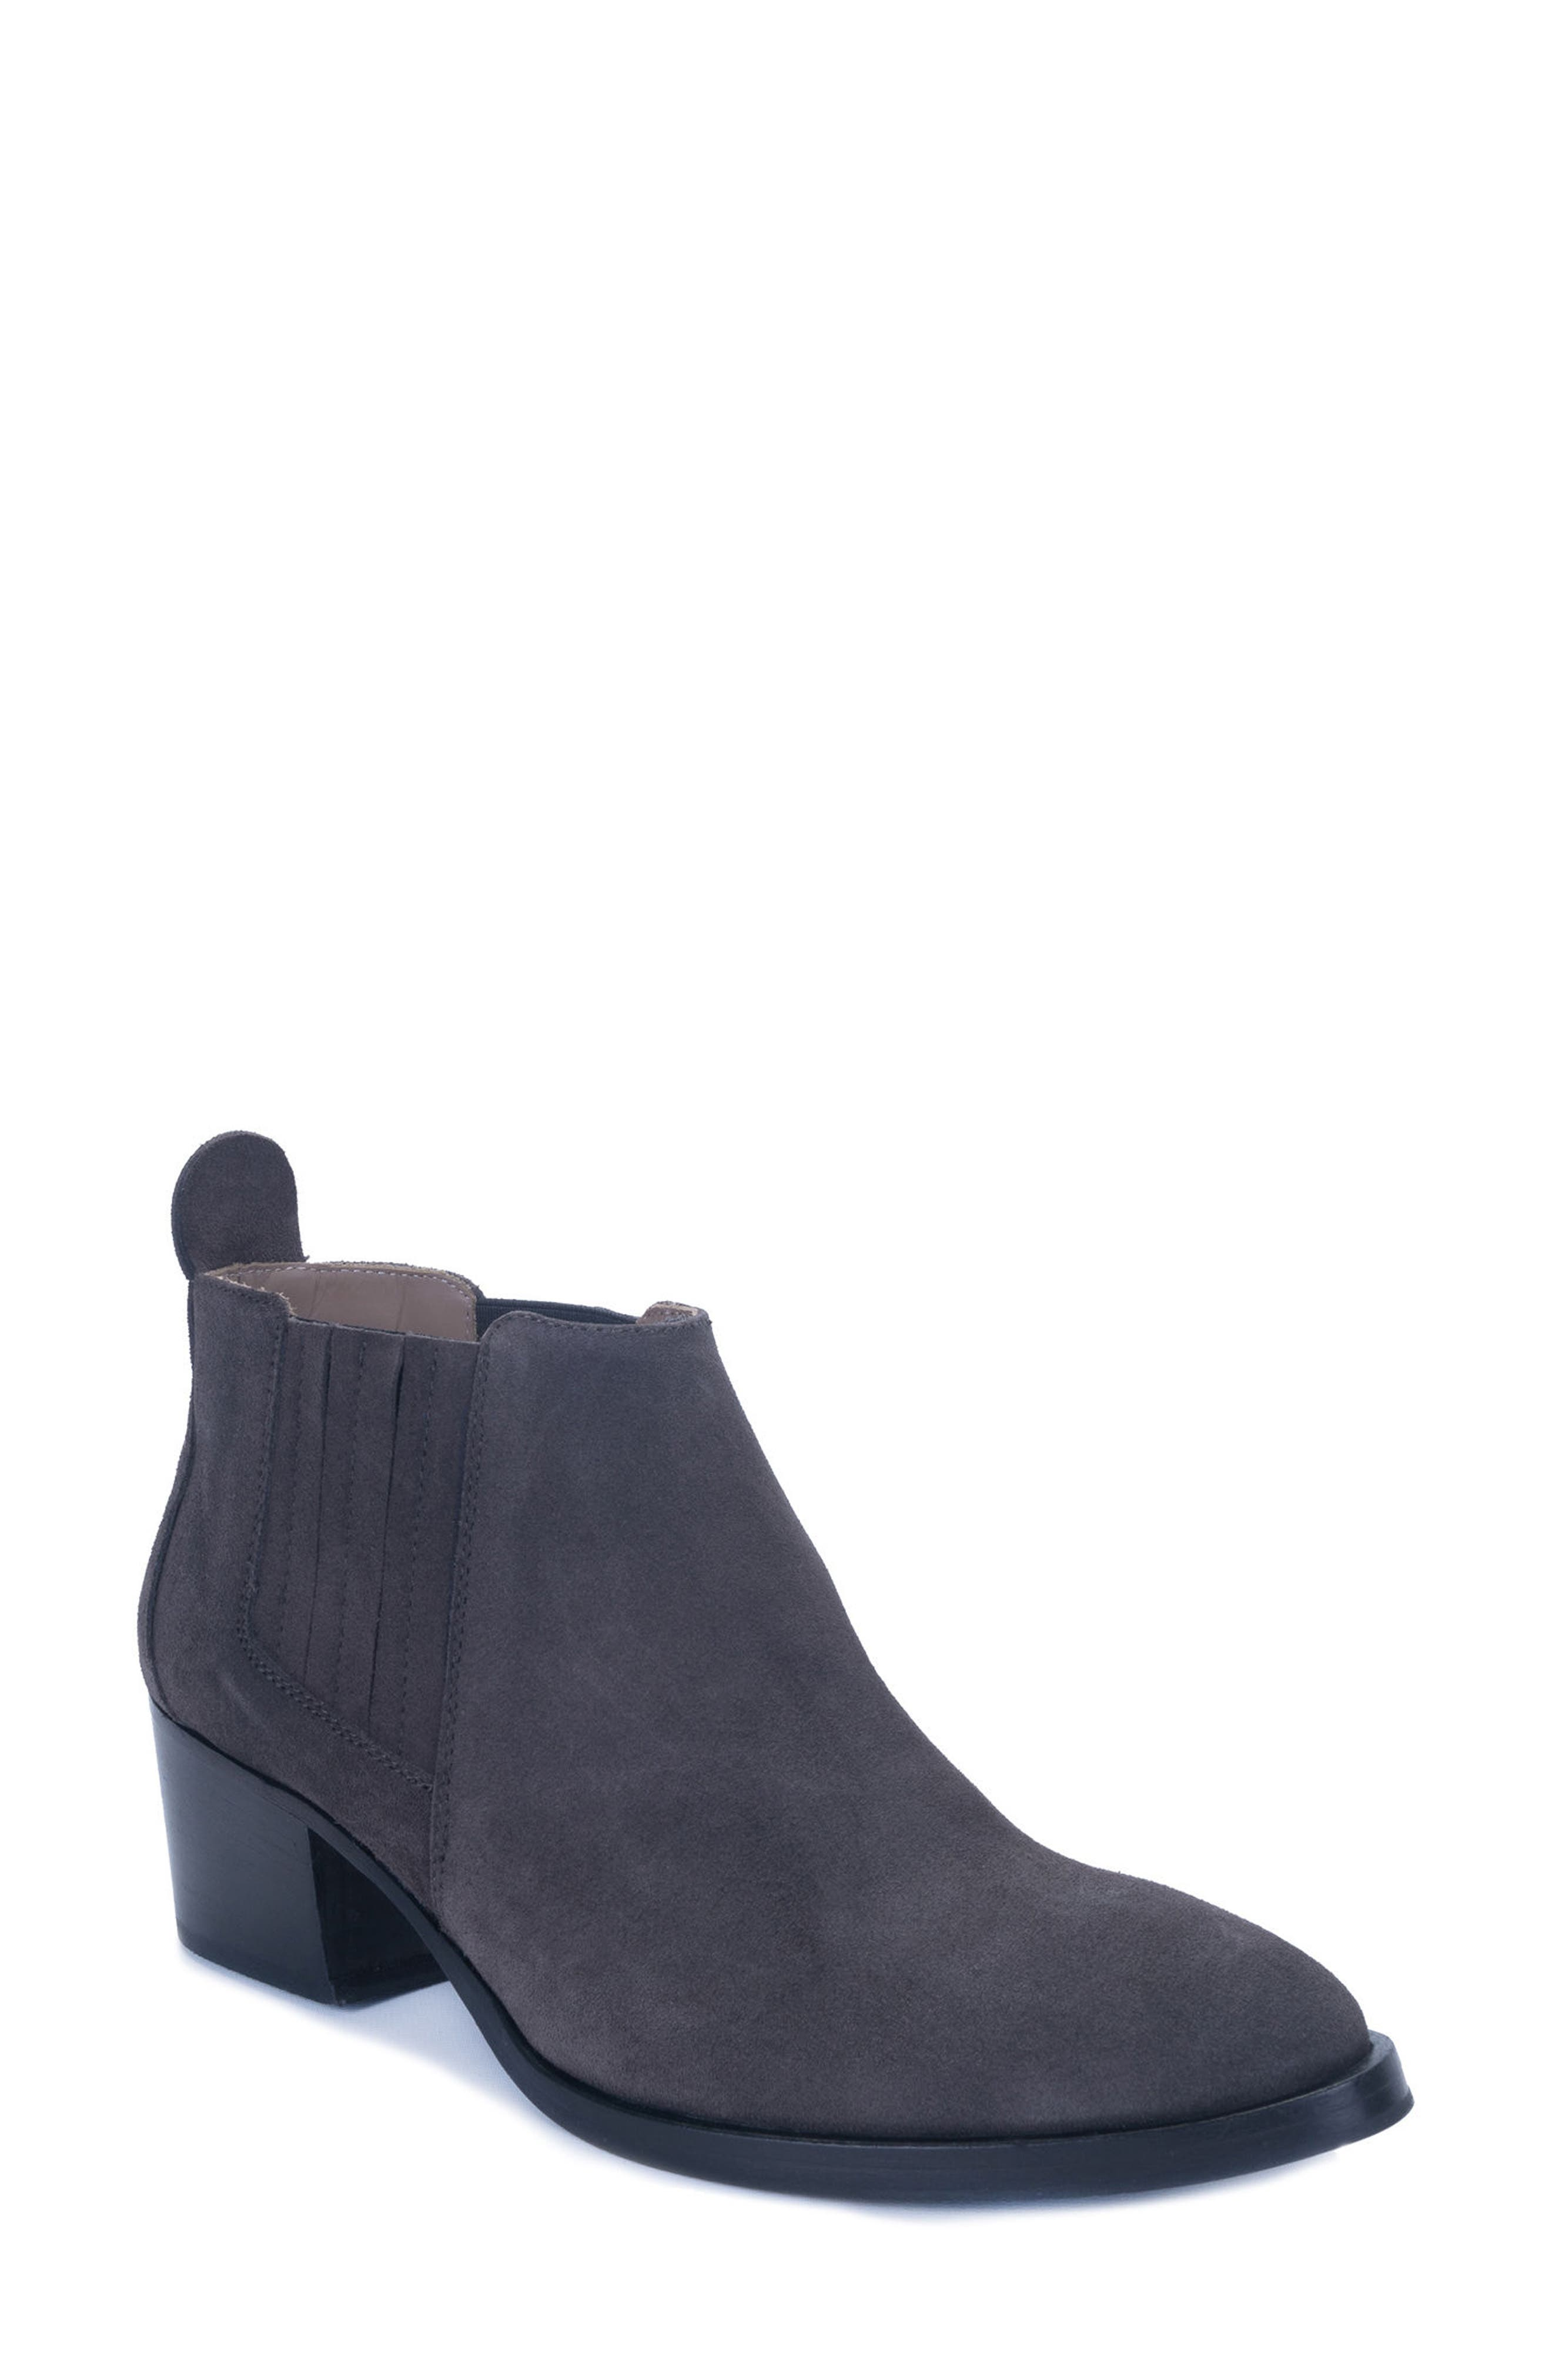 Corsini Water-Resistant Pull On Bootie,                             Main thumbnail 1, color,                             033